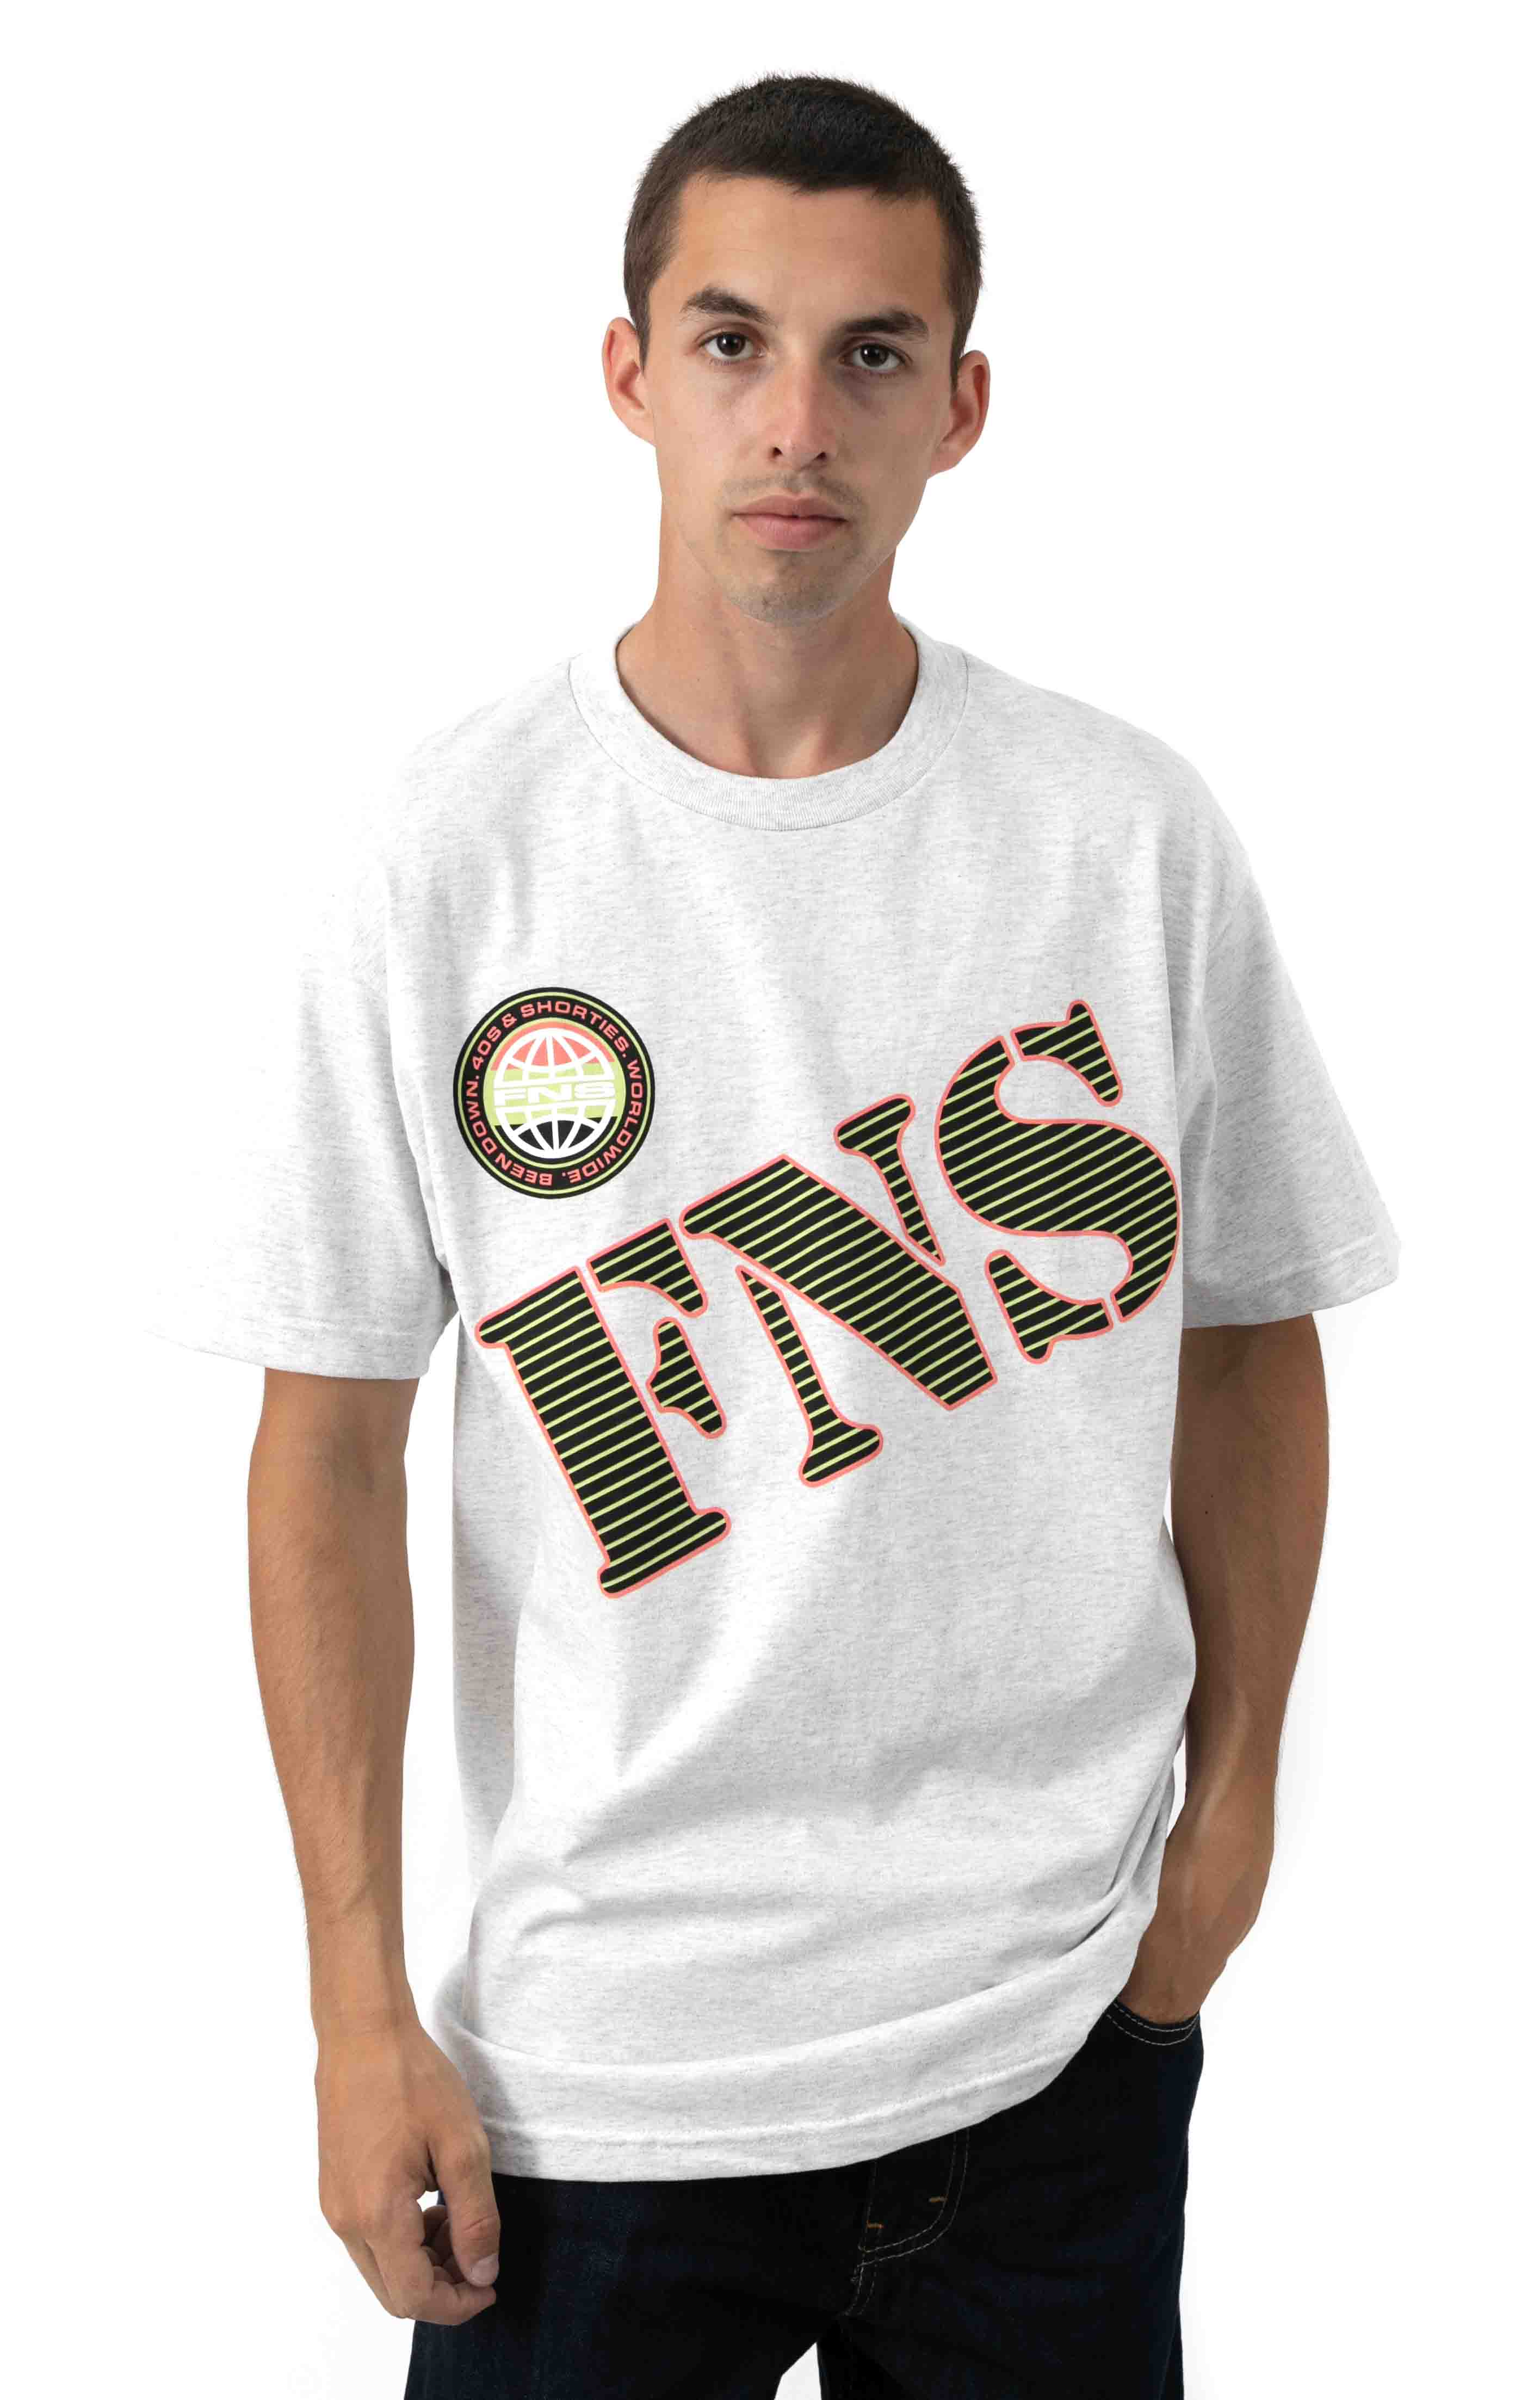 FNS Retro T-Shirt - Ash Heather